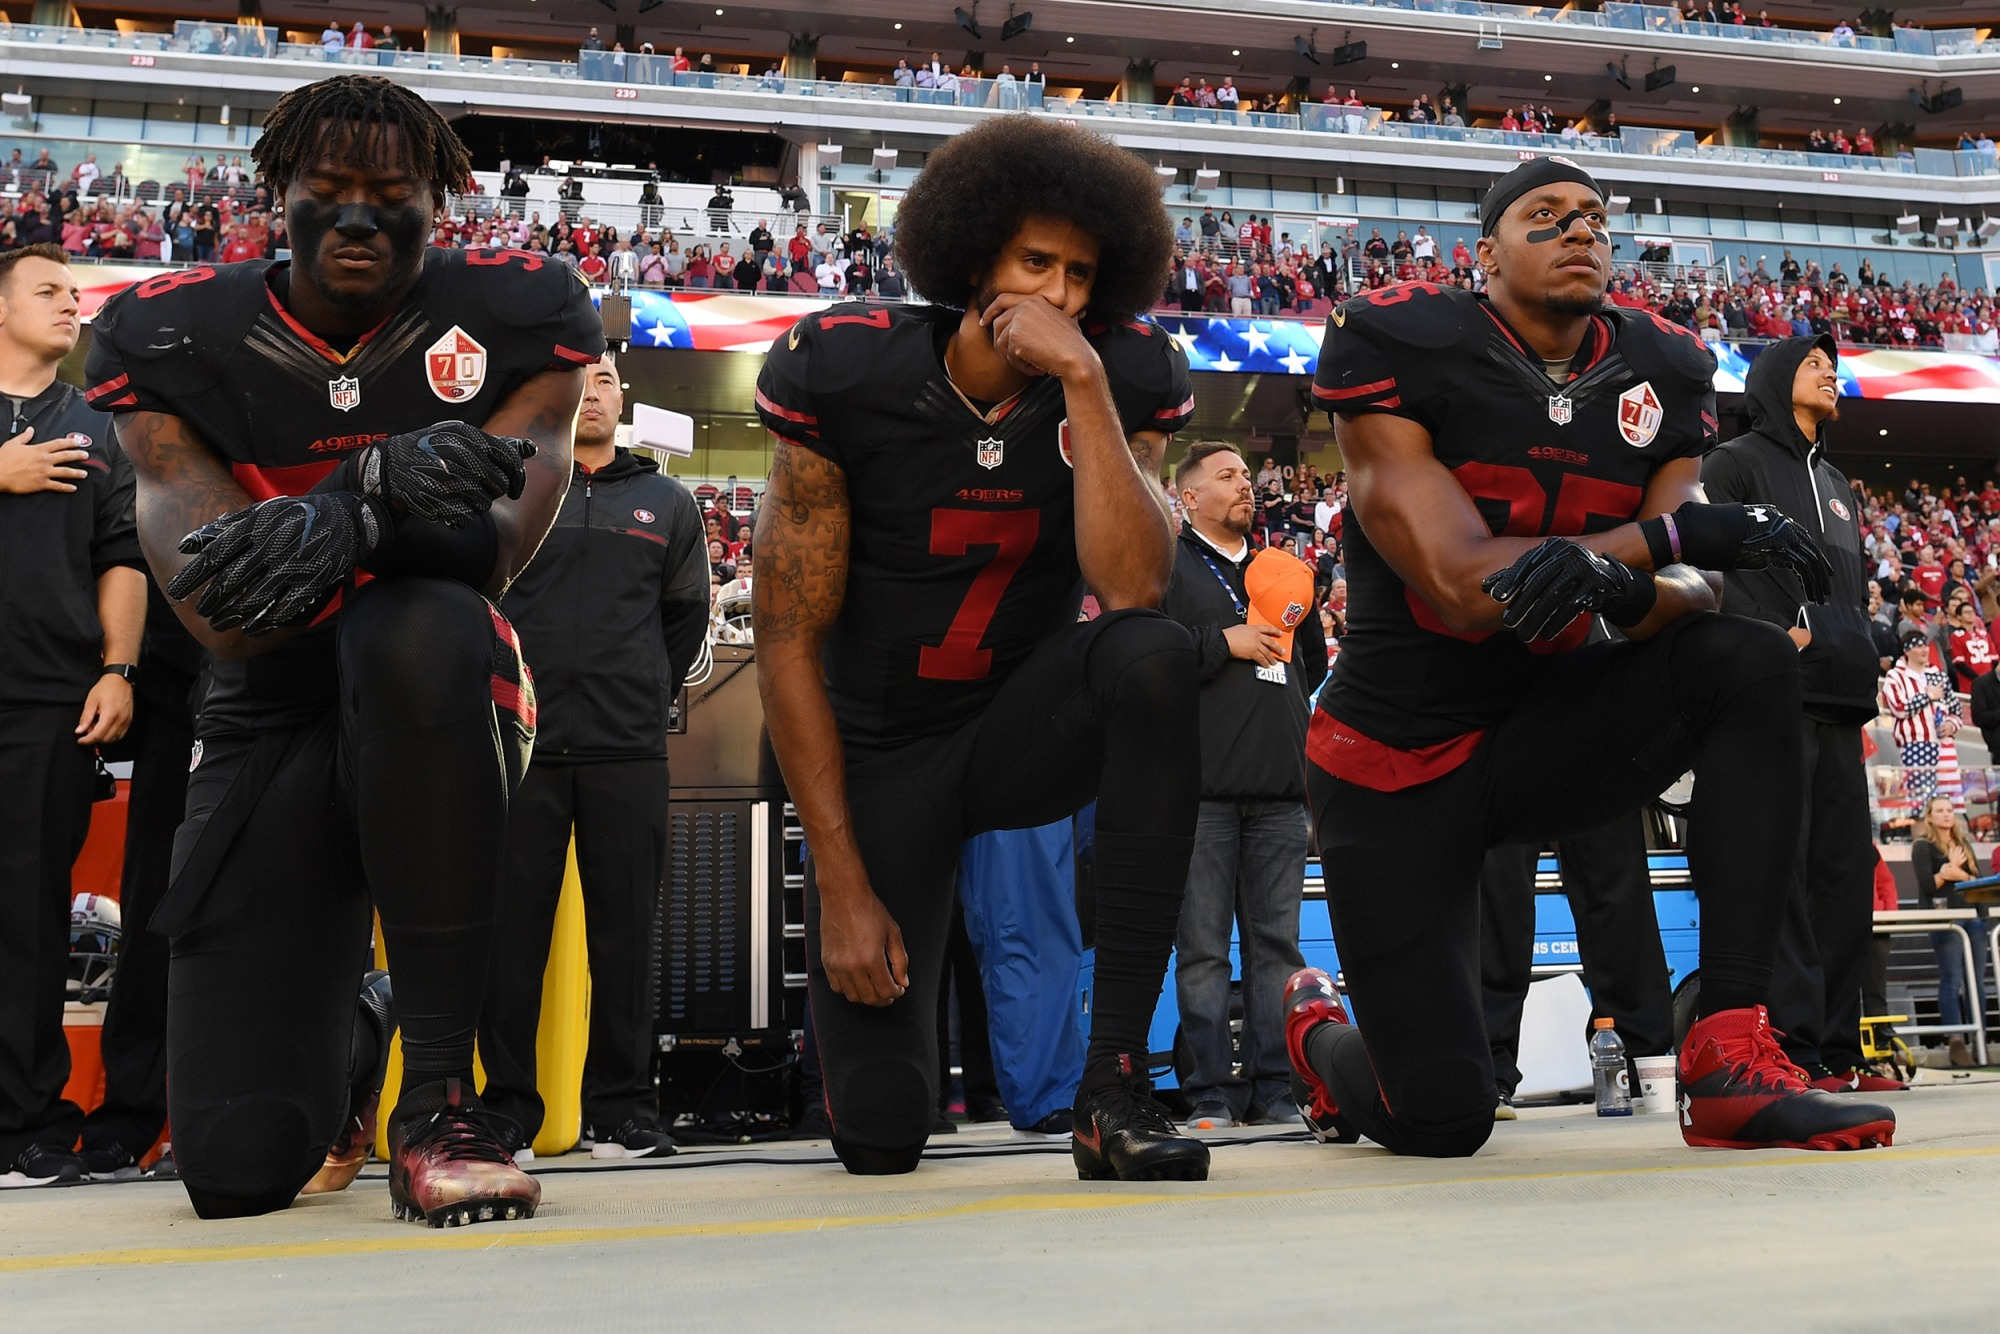 Colin Kaepernick, The National Anthem and America: How Military Service Influenced My Views On Patriotism and Protest 180905-colin-kaepernick-anthem-kneeling-se-558p_188b933a95b3c0bb4f06fd631dde468b.fit-2000w